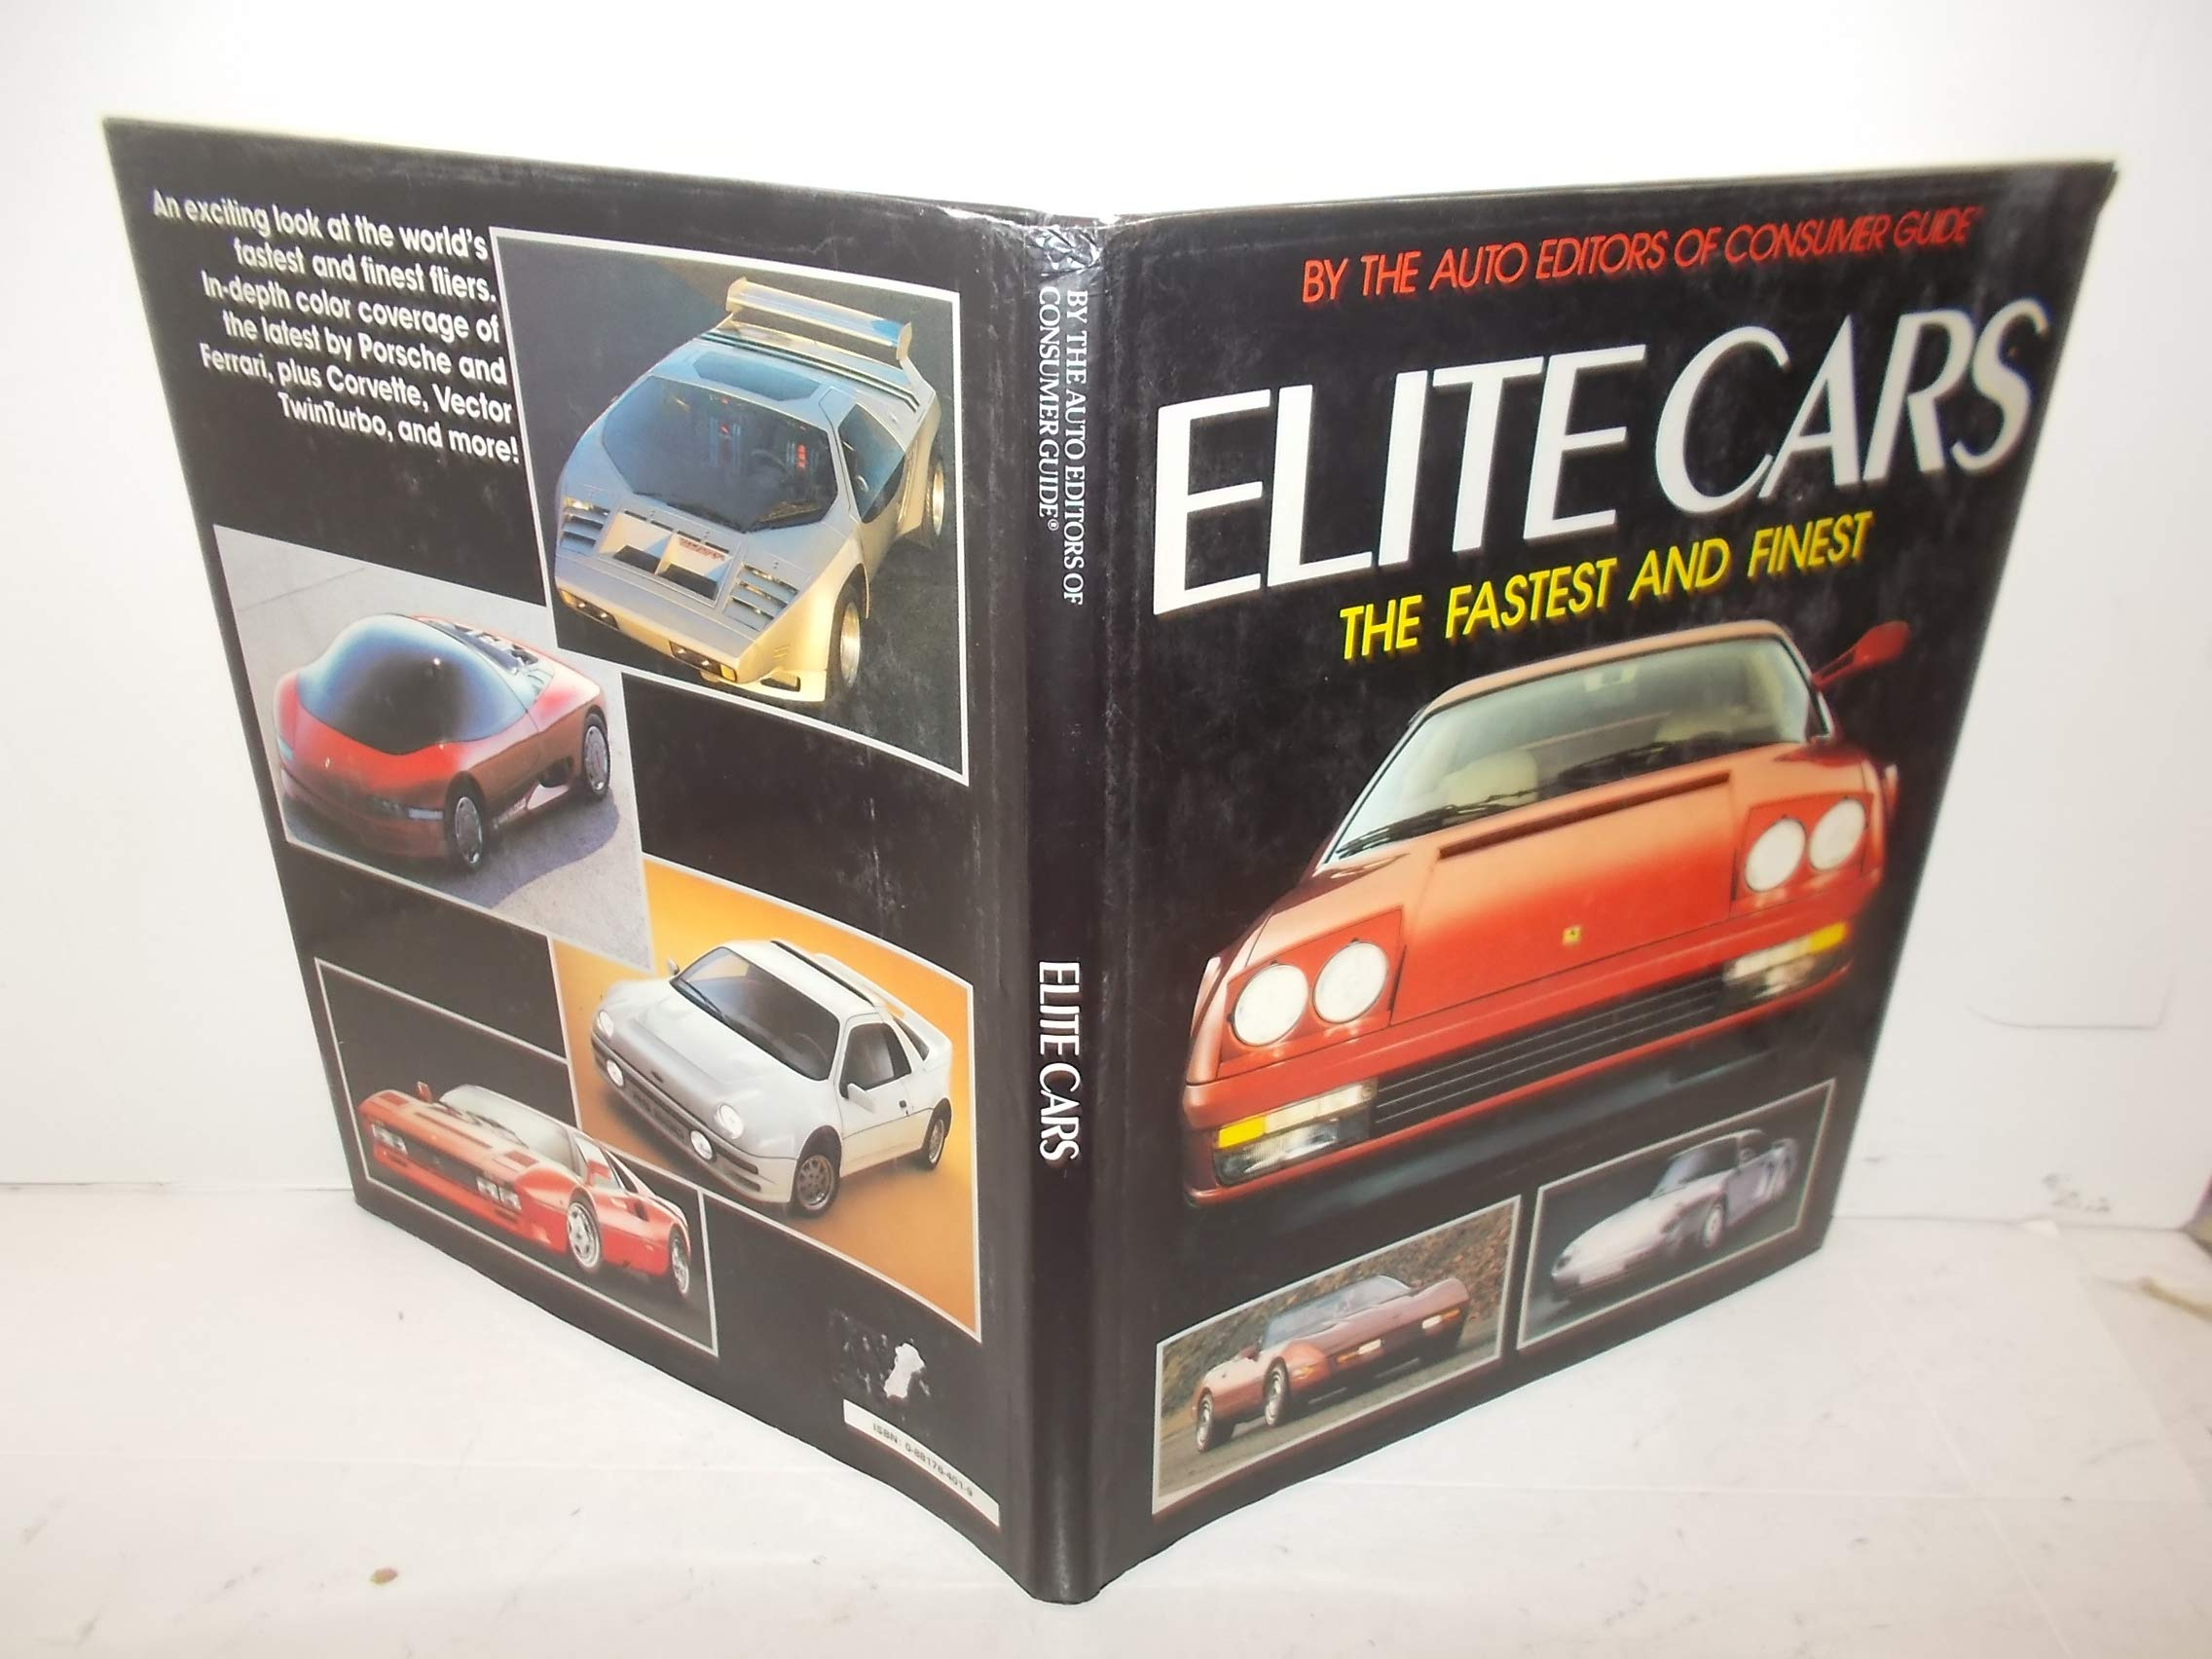 elite cars not listed color photographs 9780881764017 amazon com books amazon com